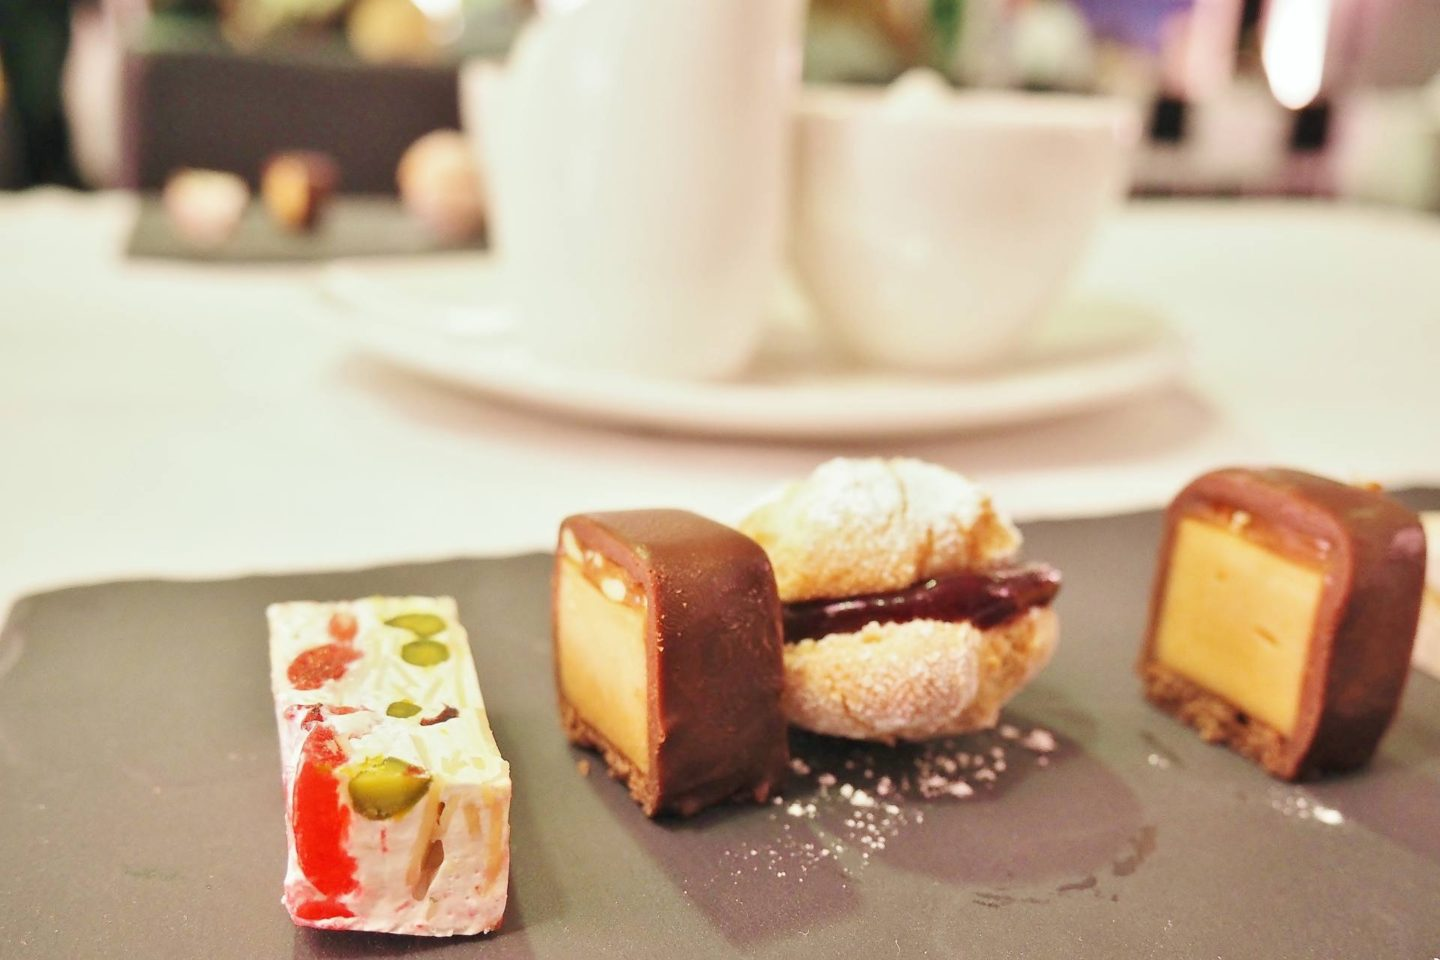 Emma Victoria Stokes Elegant Eat Fine Dining Edgbaston Cricket Ground Petit Fours